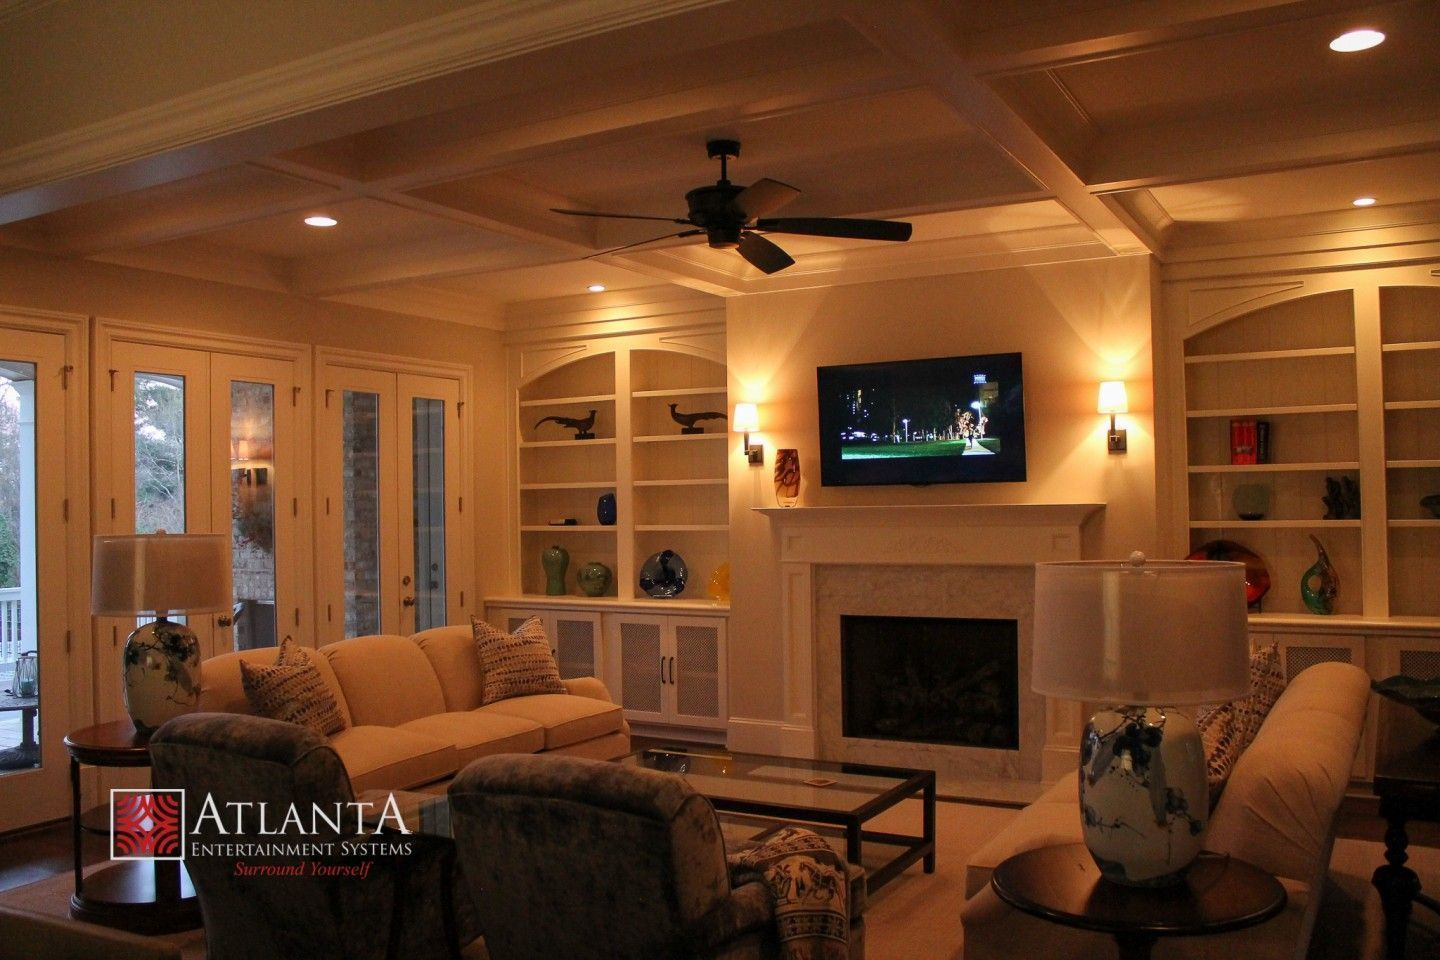 At Atlanta Entertainment Systems, they provide residential home ...